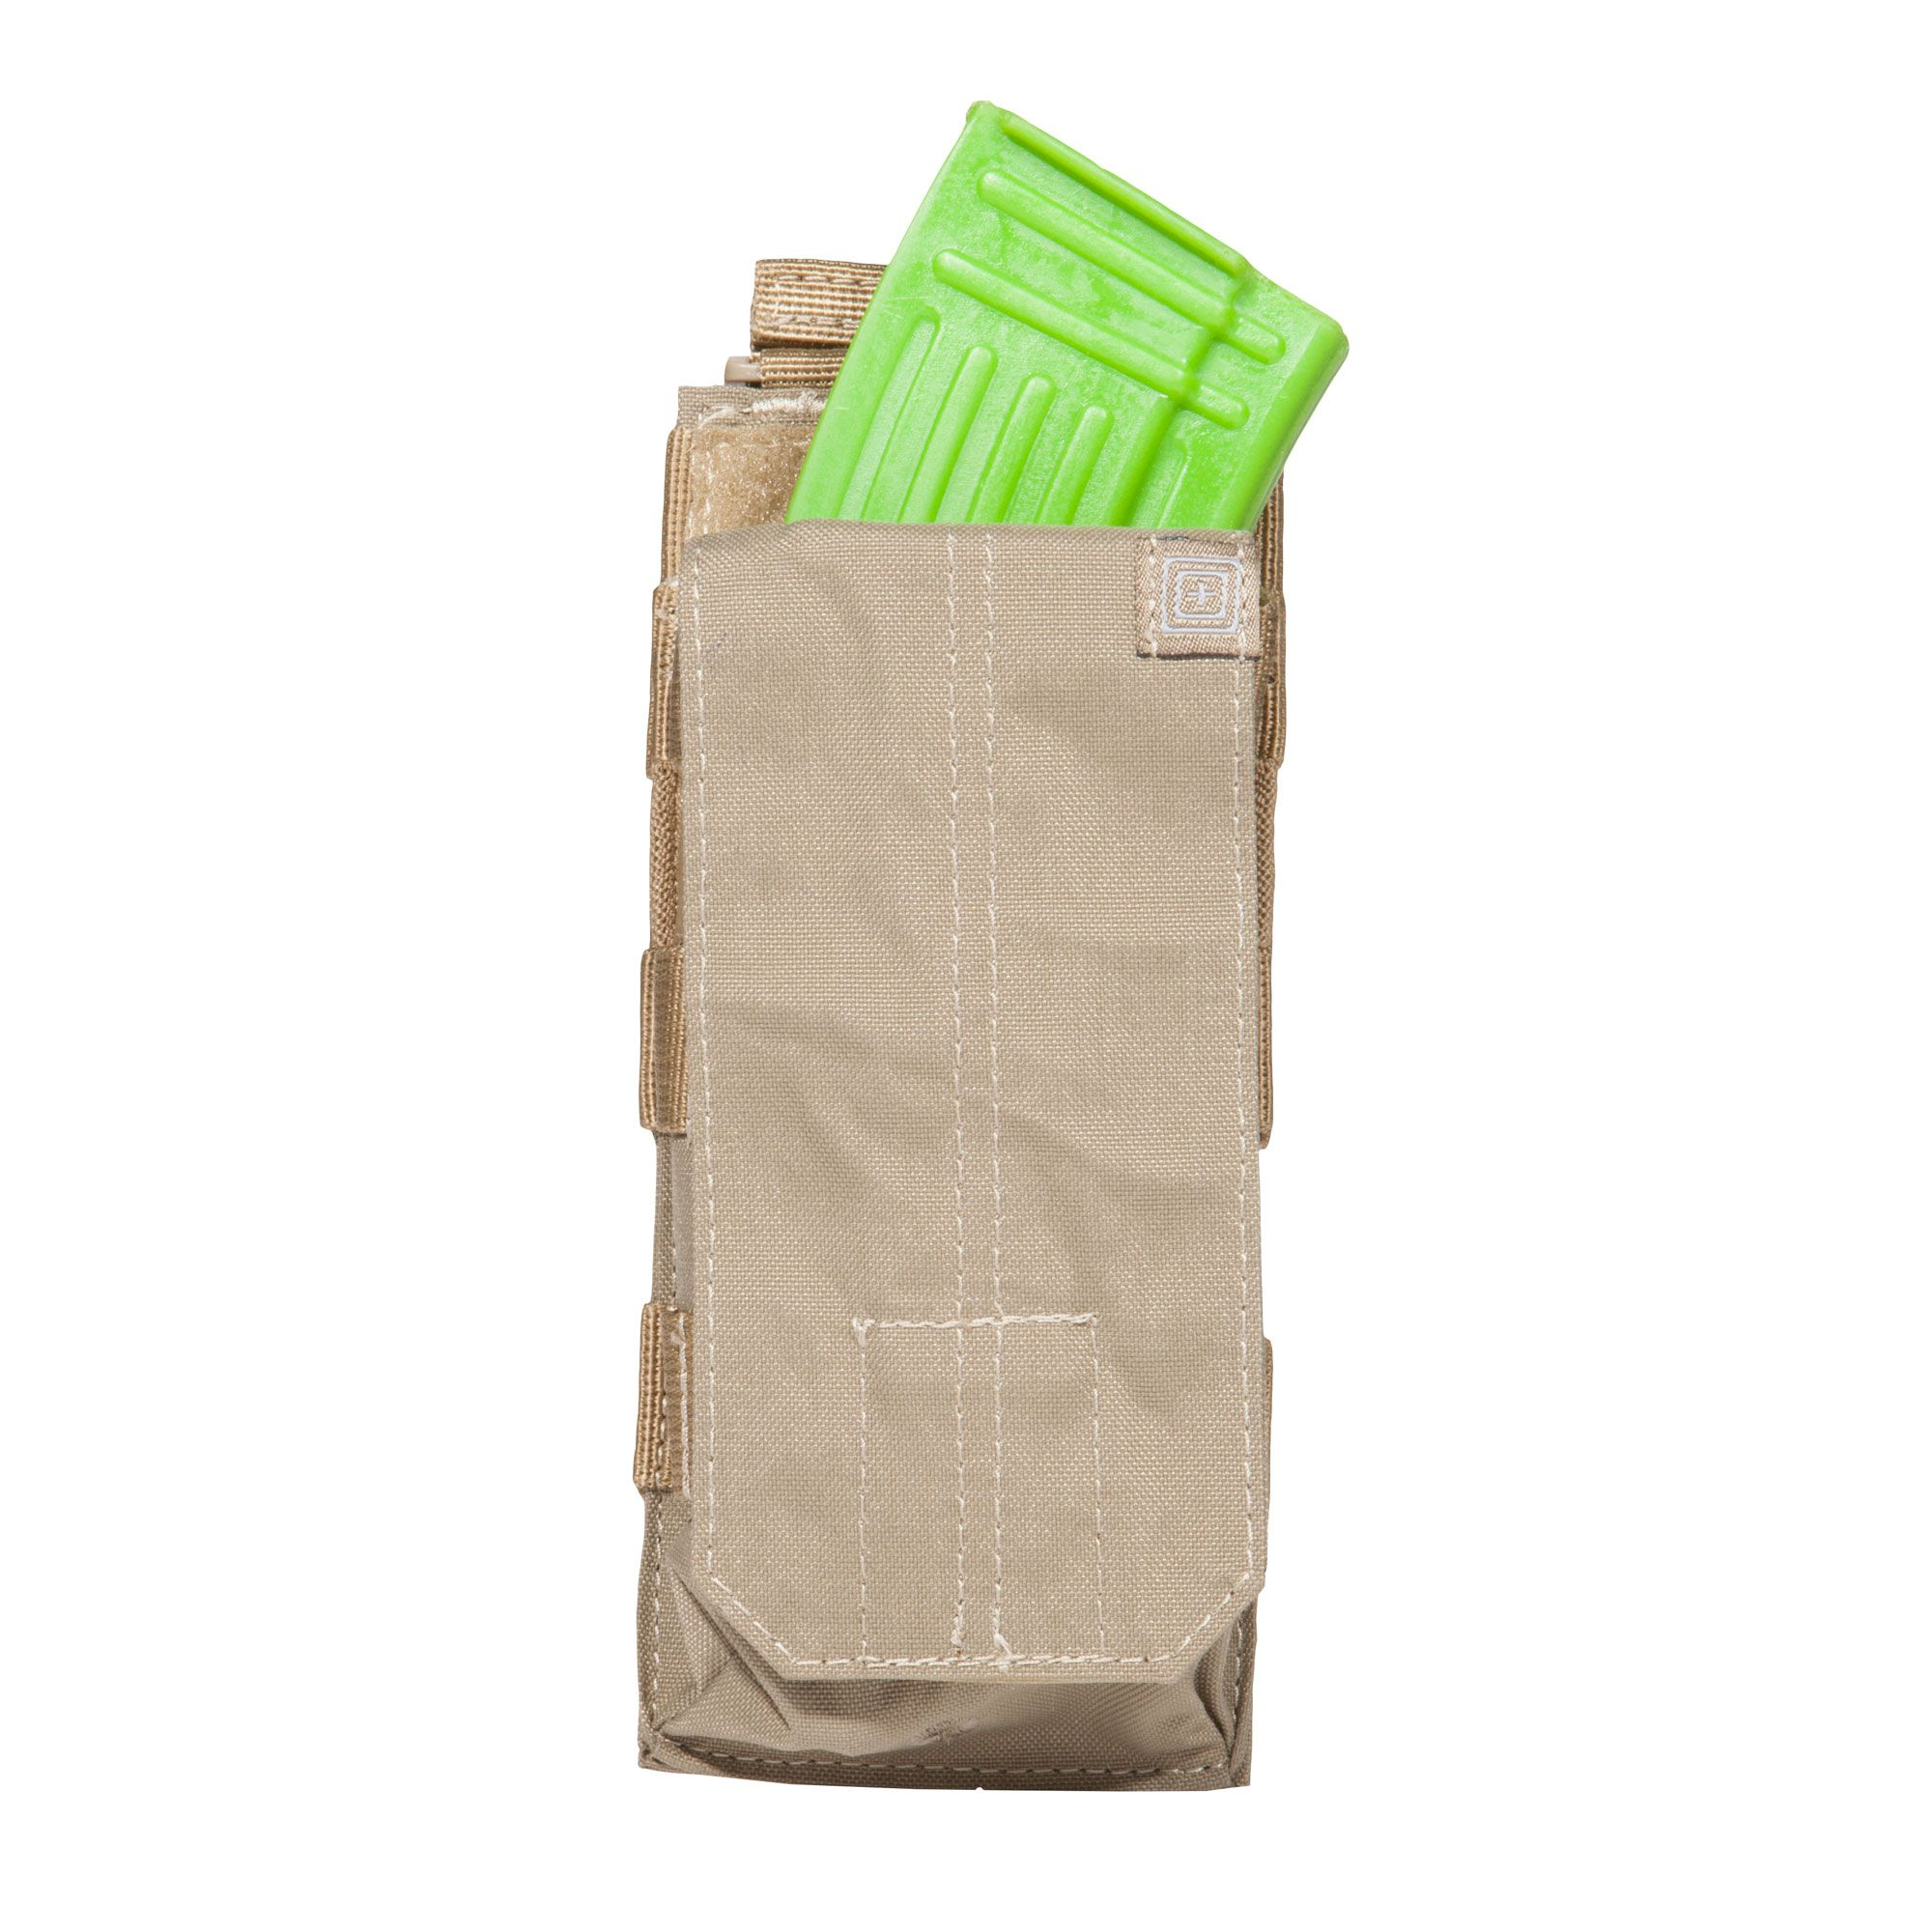 Pouch AR BUNGEE/COVER SINGLE – Sandstone